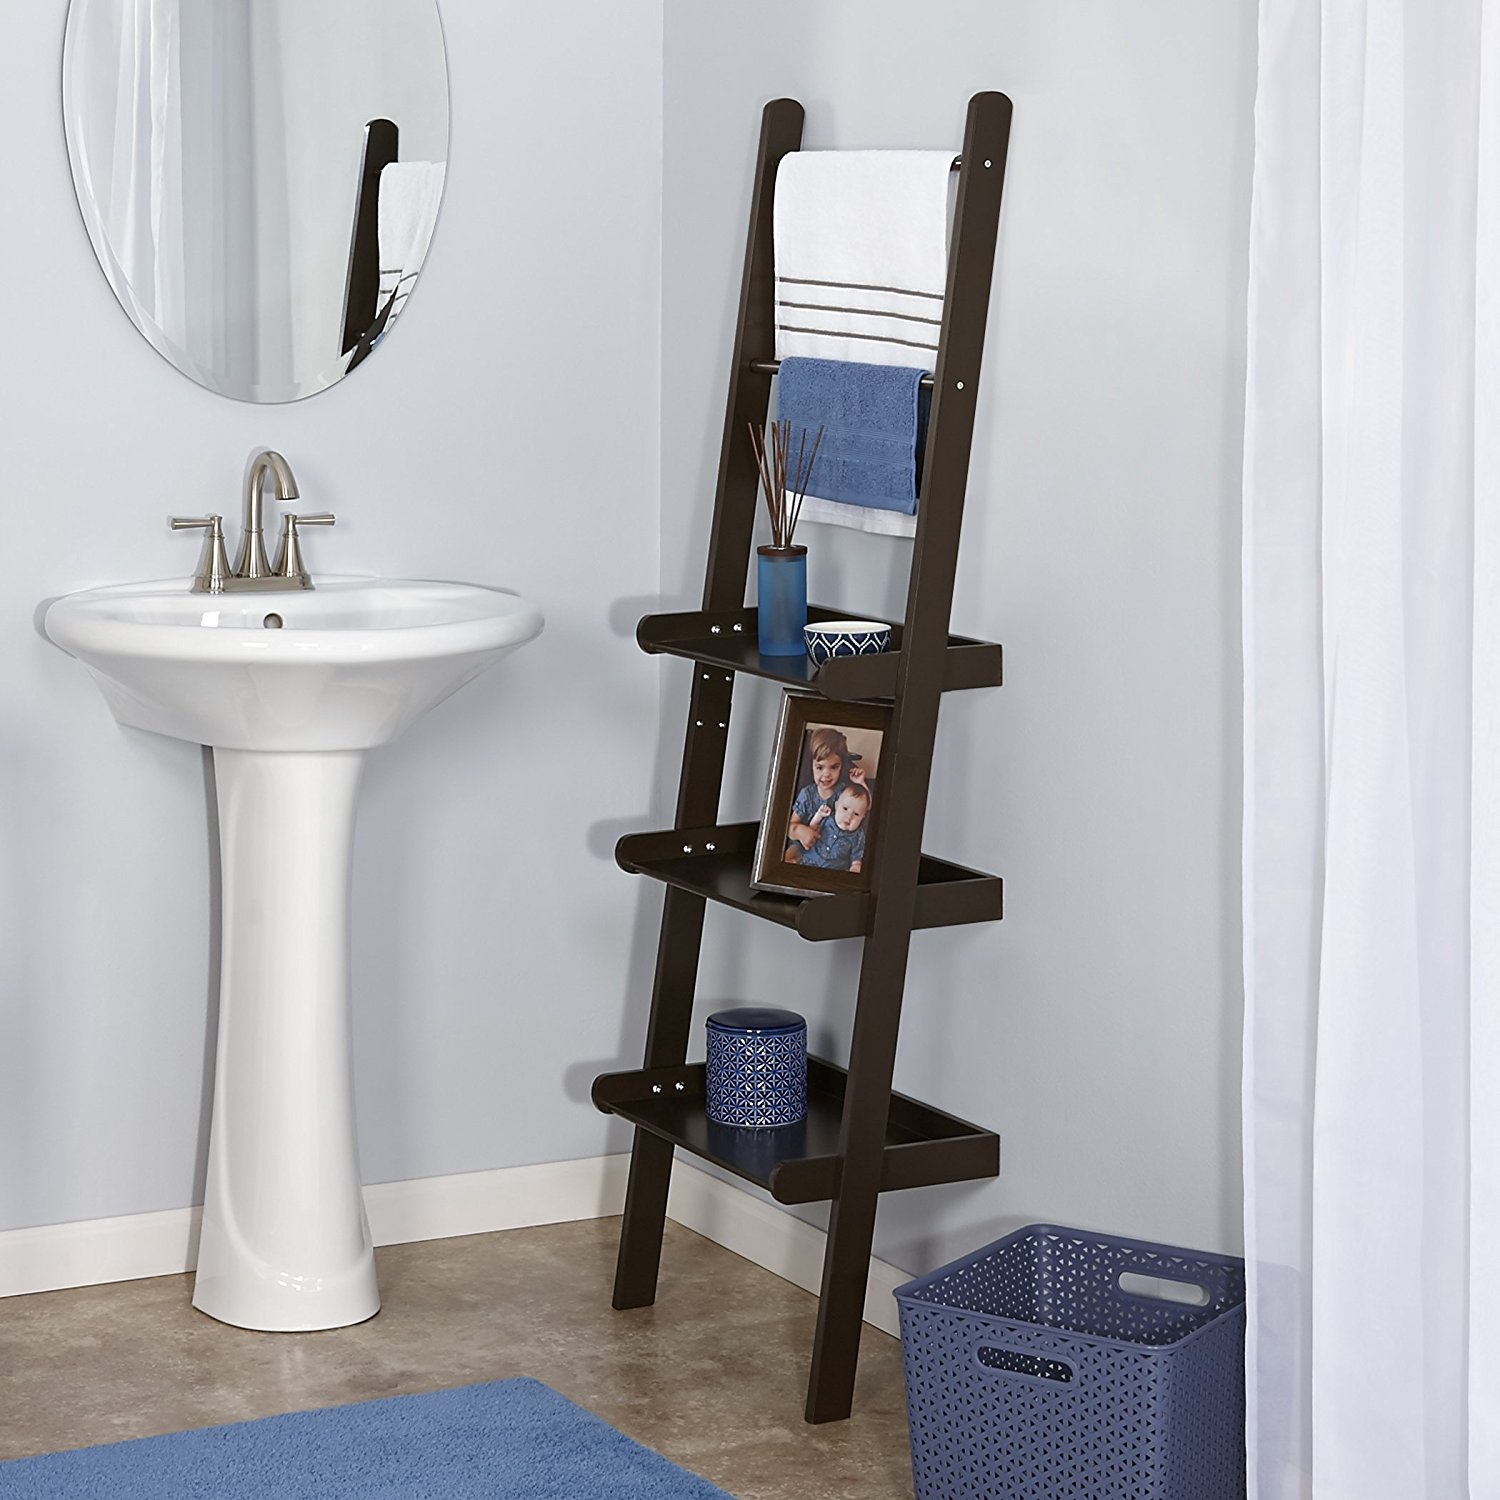 11 Best Bathroom Ladder Shelves for toilet storage-reviews